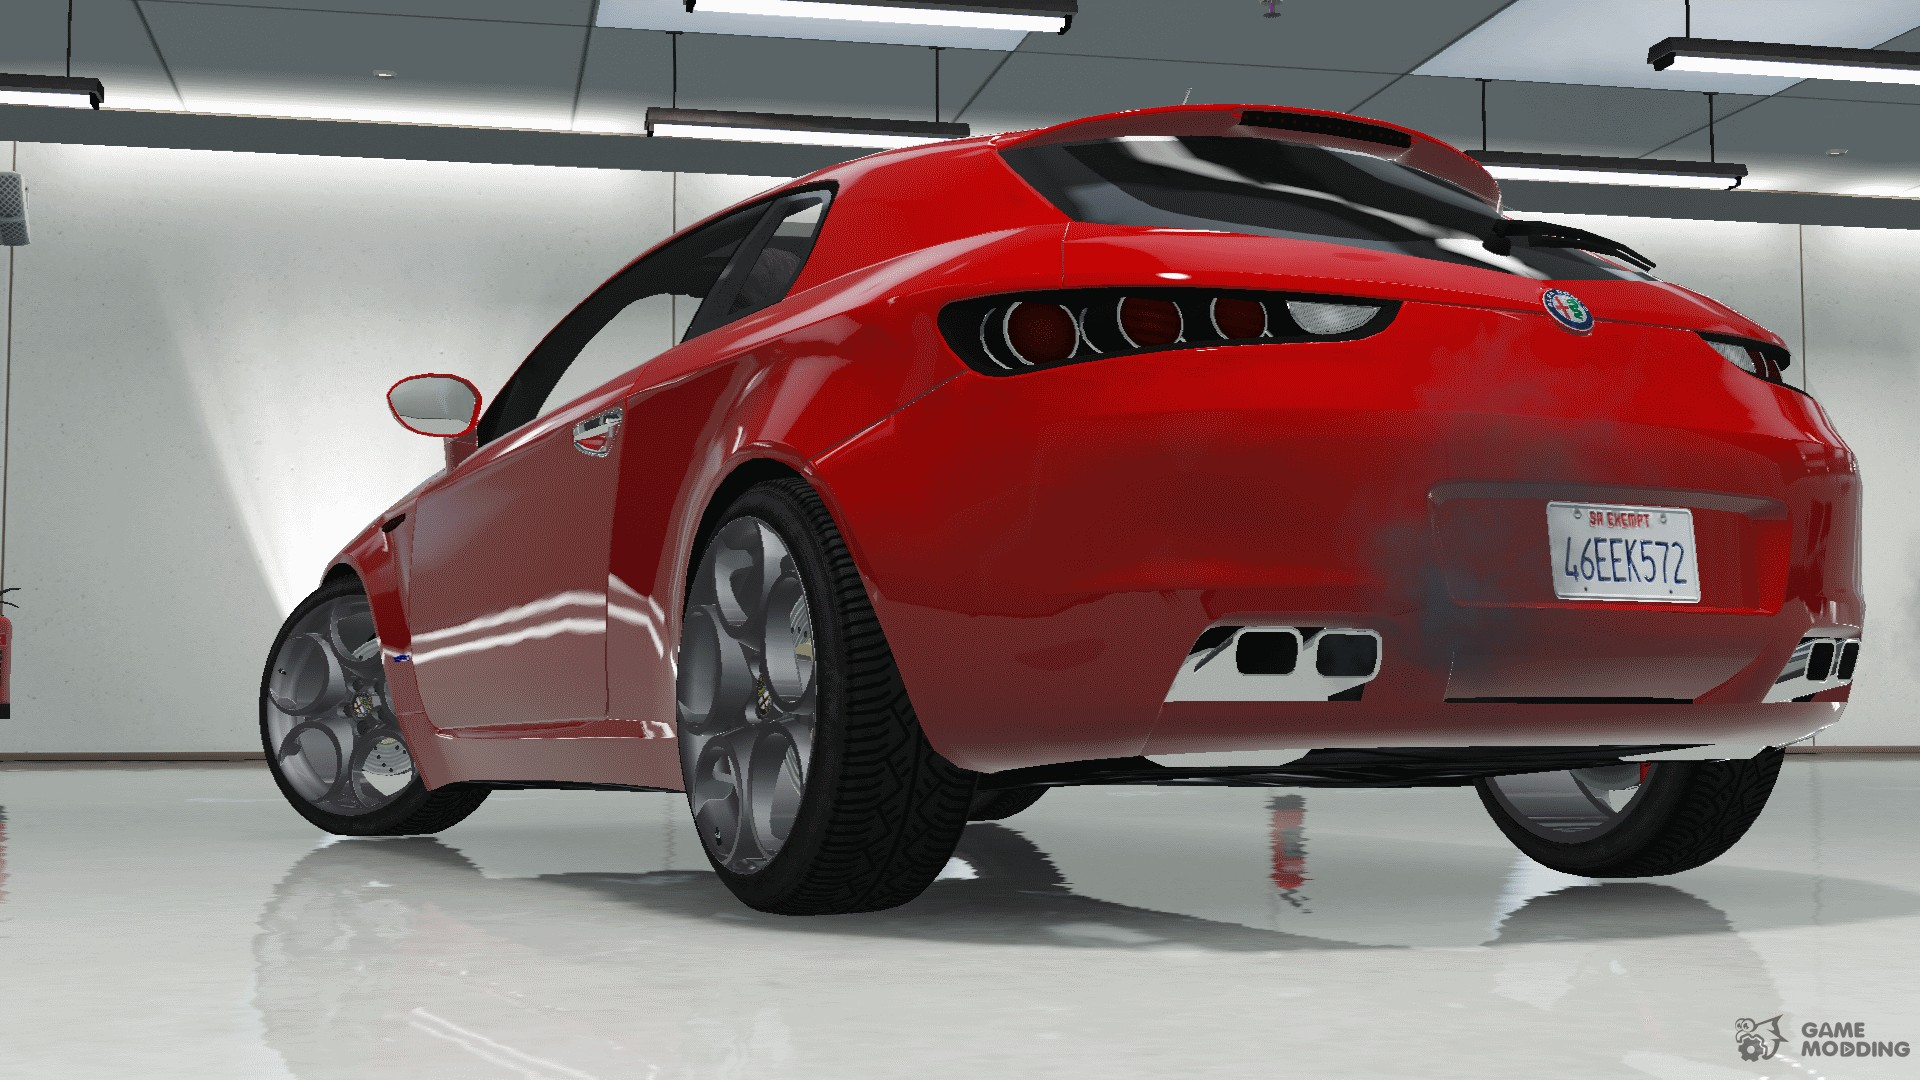 alfa romeo break alfa romeo brera specs 2005 2006 2007 2008 2009 2010 autoevolution alfa romeo. Black Bedroom Furniture Sets. Home Design Ideas